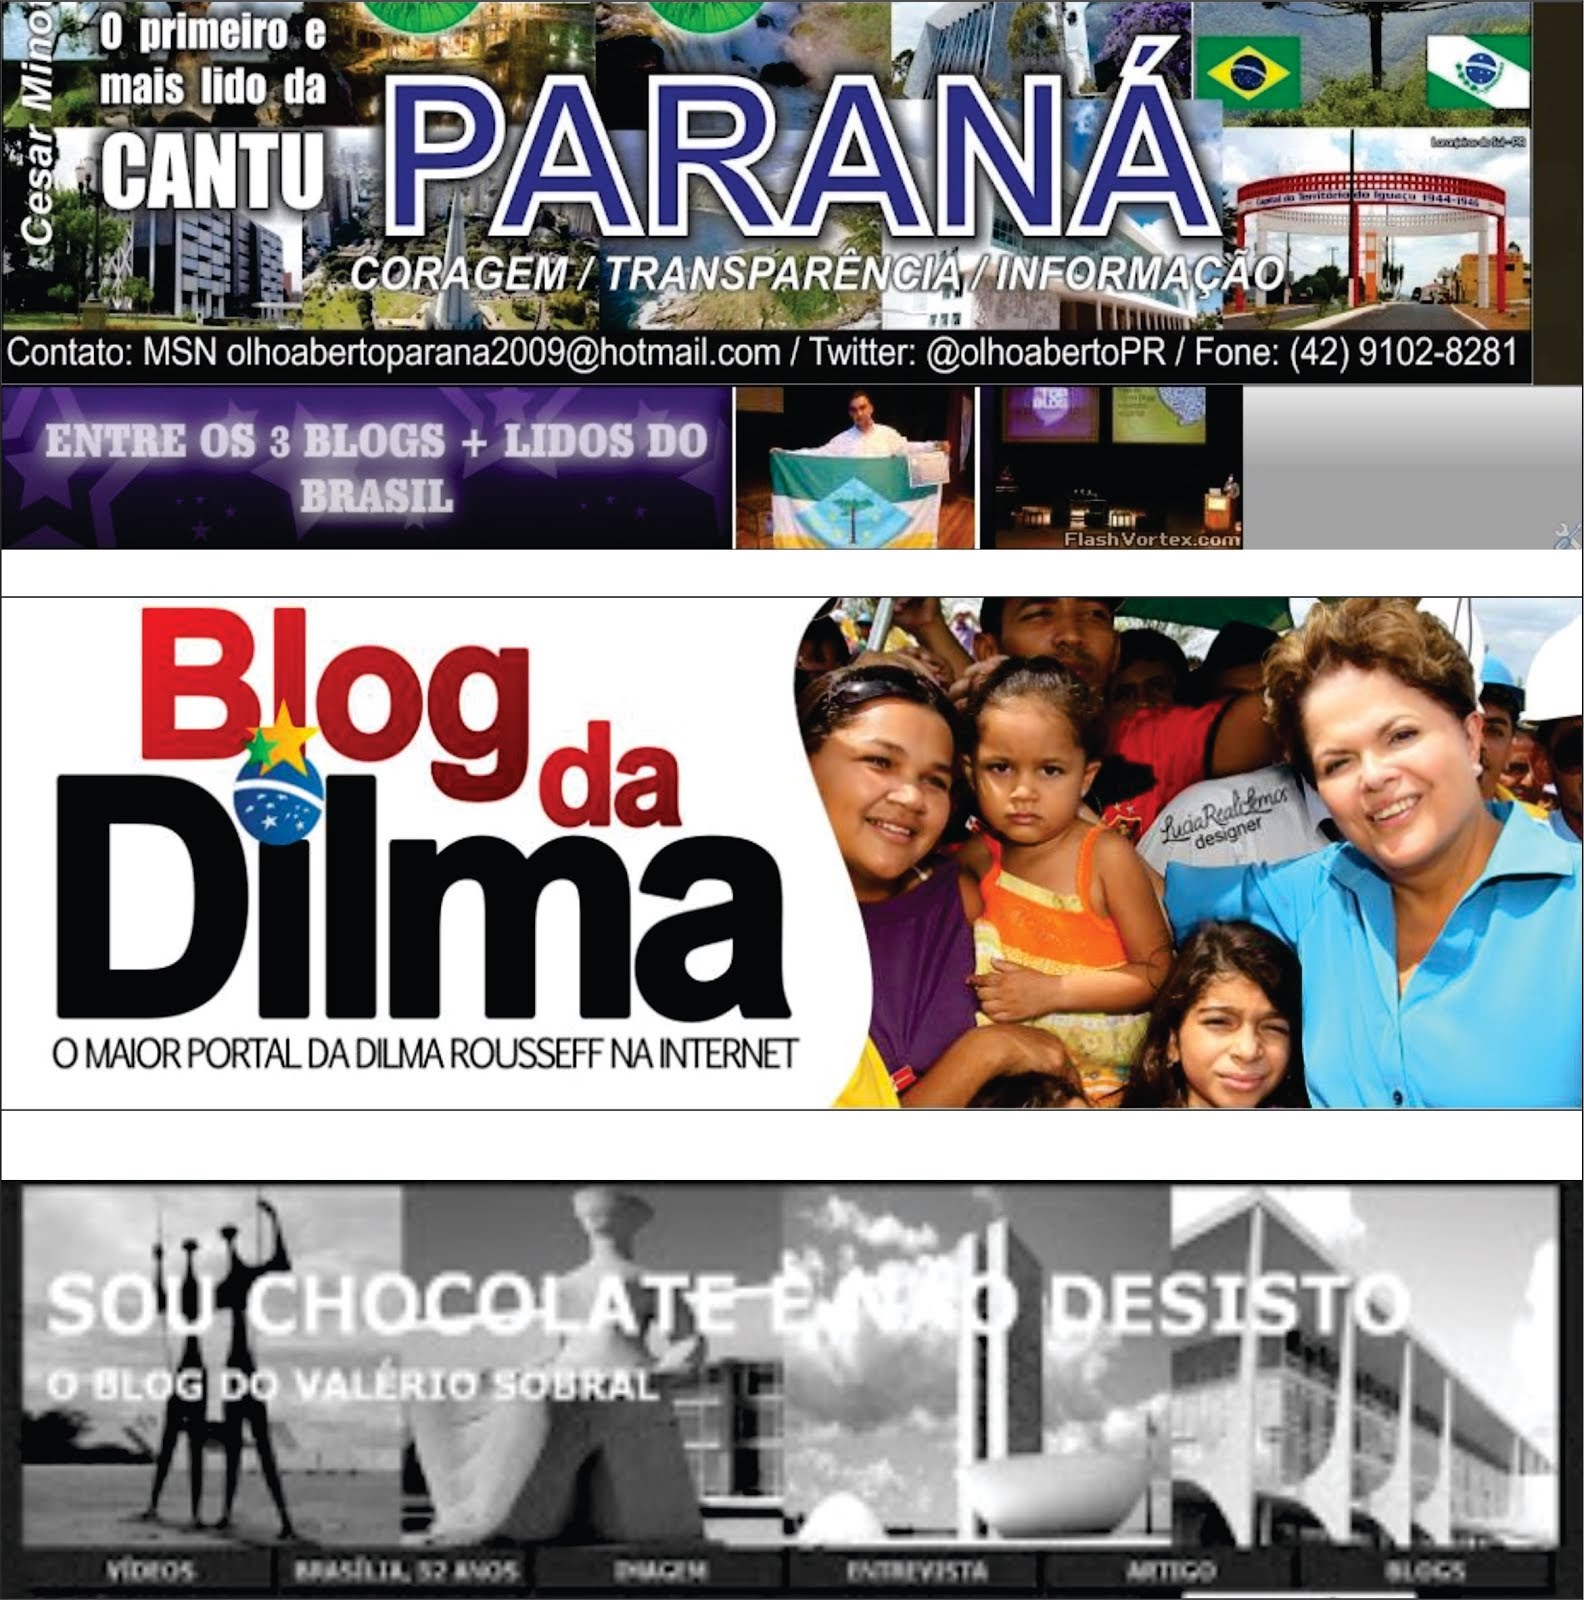 Blog olho aberto vai disputar a final do Top Blog Brasil com o Blog da Dilma